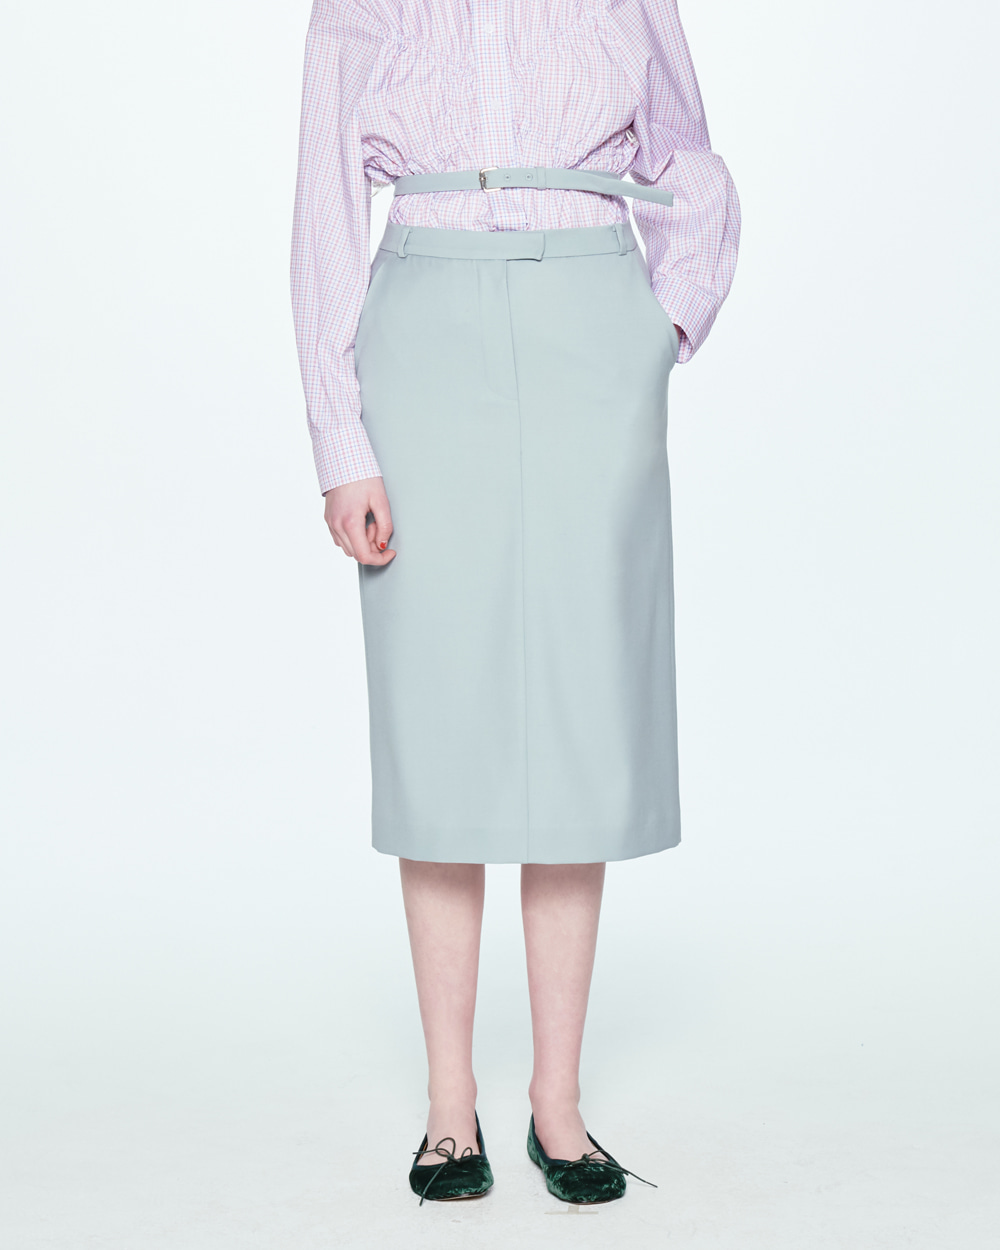 SS20 HIGH WAIST BELTED GRAY SKIRT